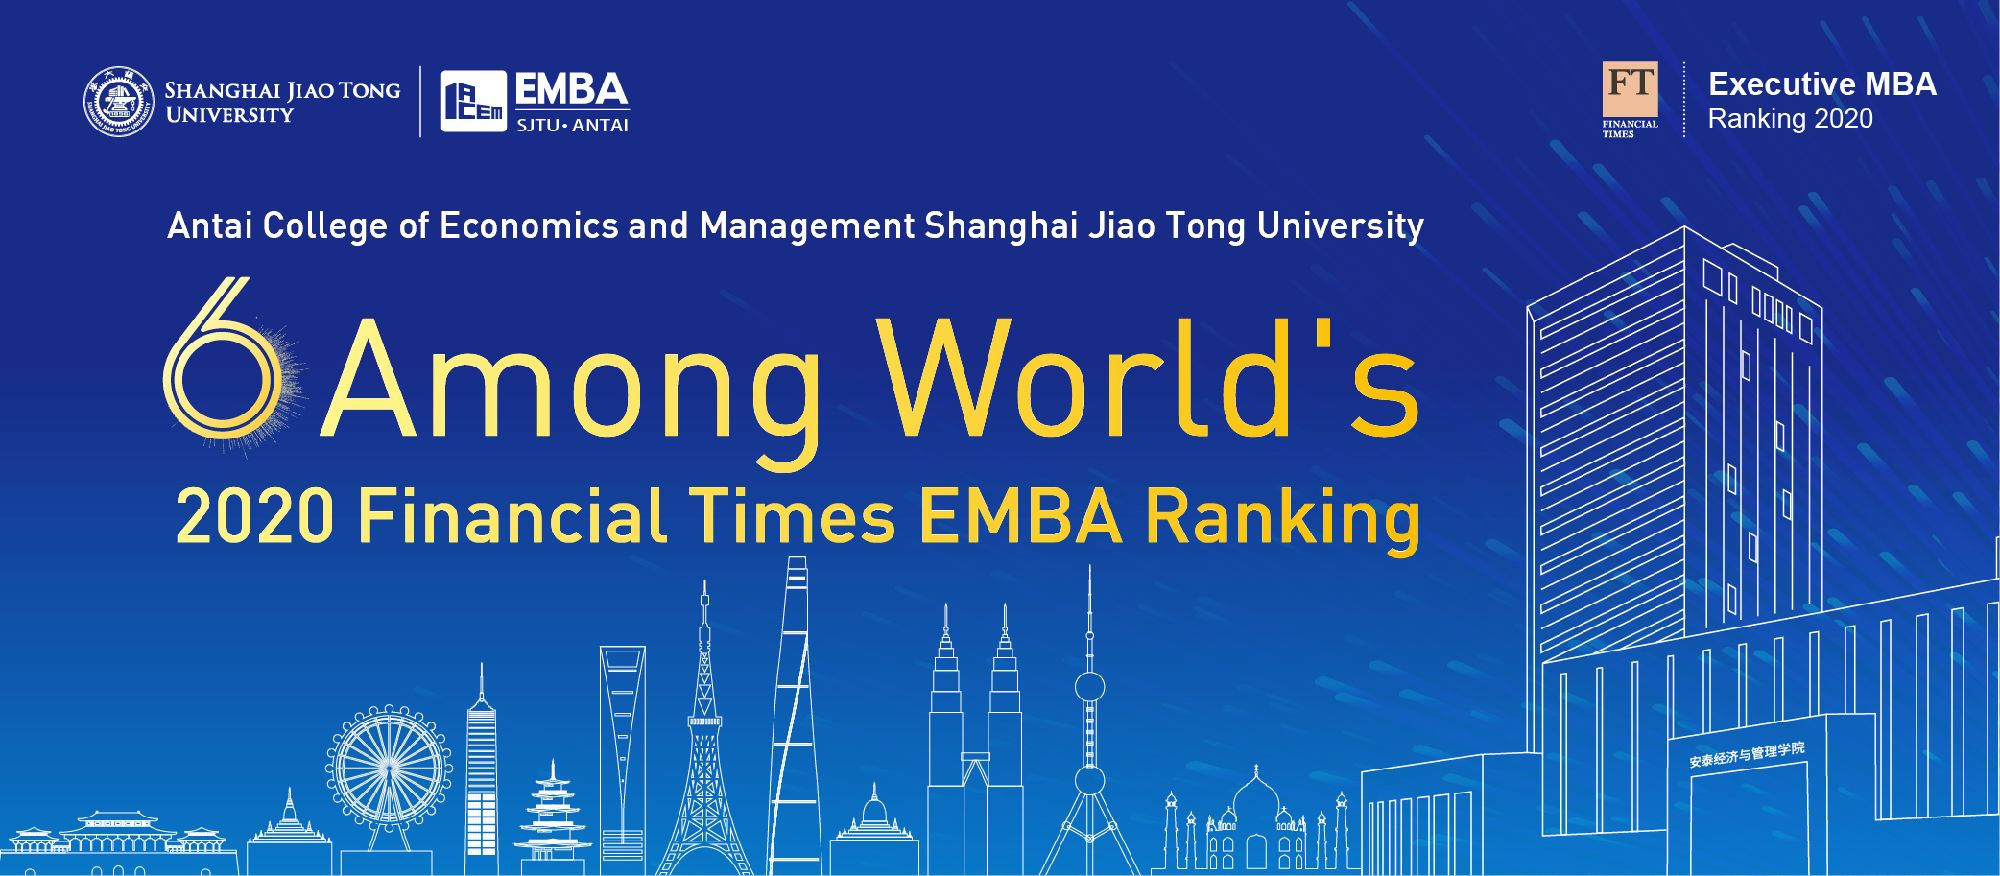 ACEM Ranked 6th Worldwide in FT EMBA Ranking 2020-Antai business college